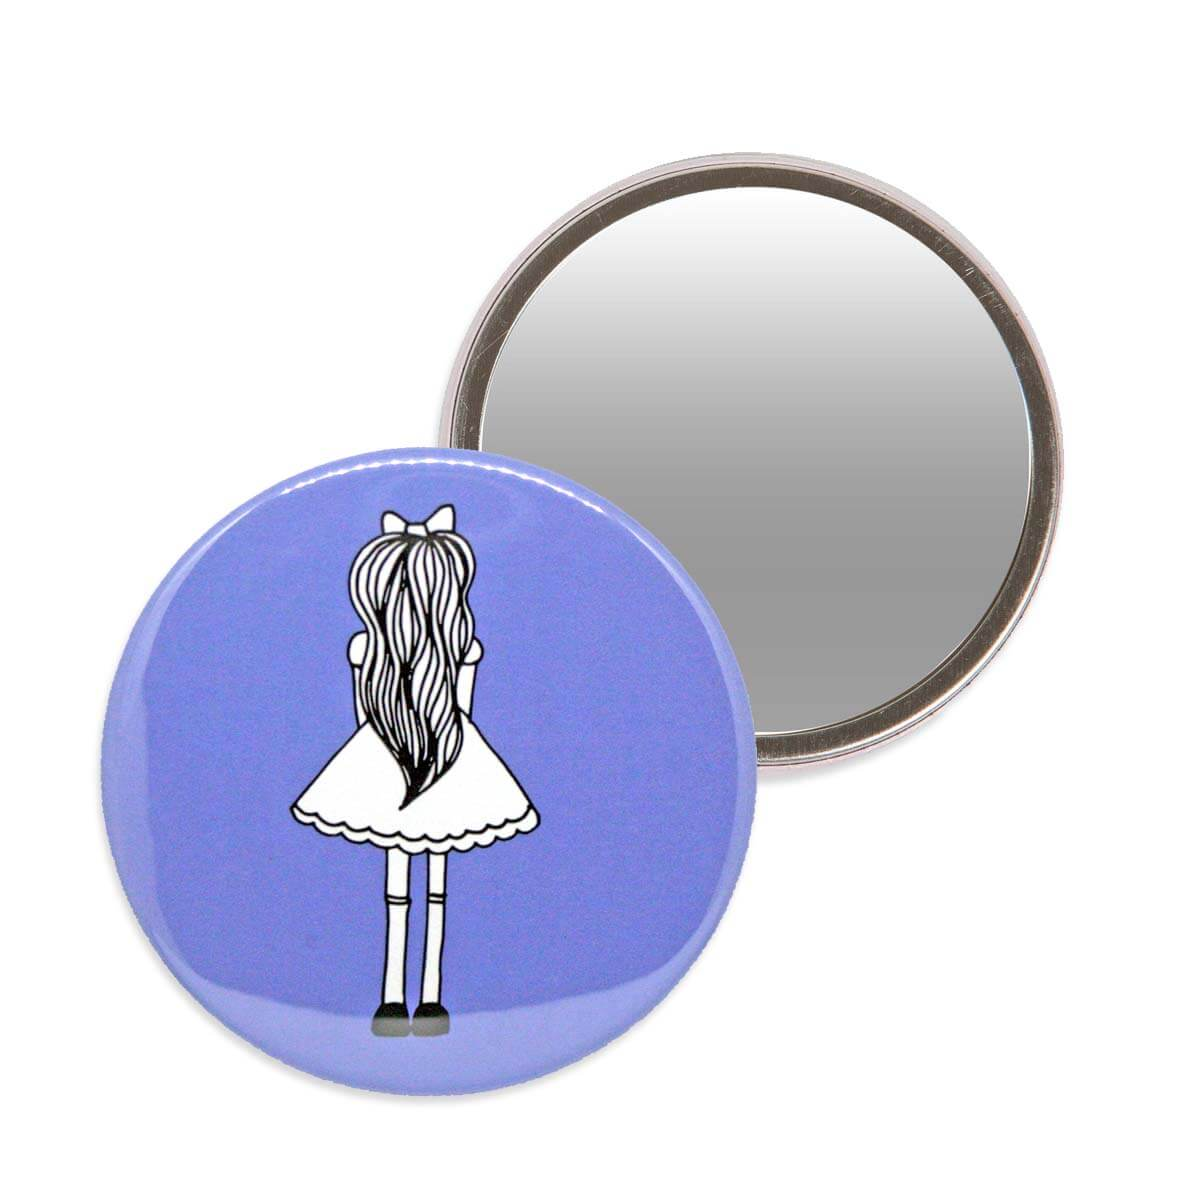 Blue Alice in Wonderland makeup mirror. 7.6cm diameter